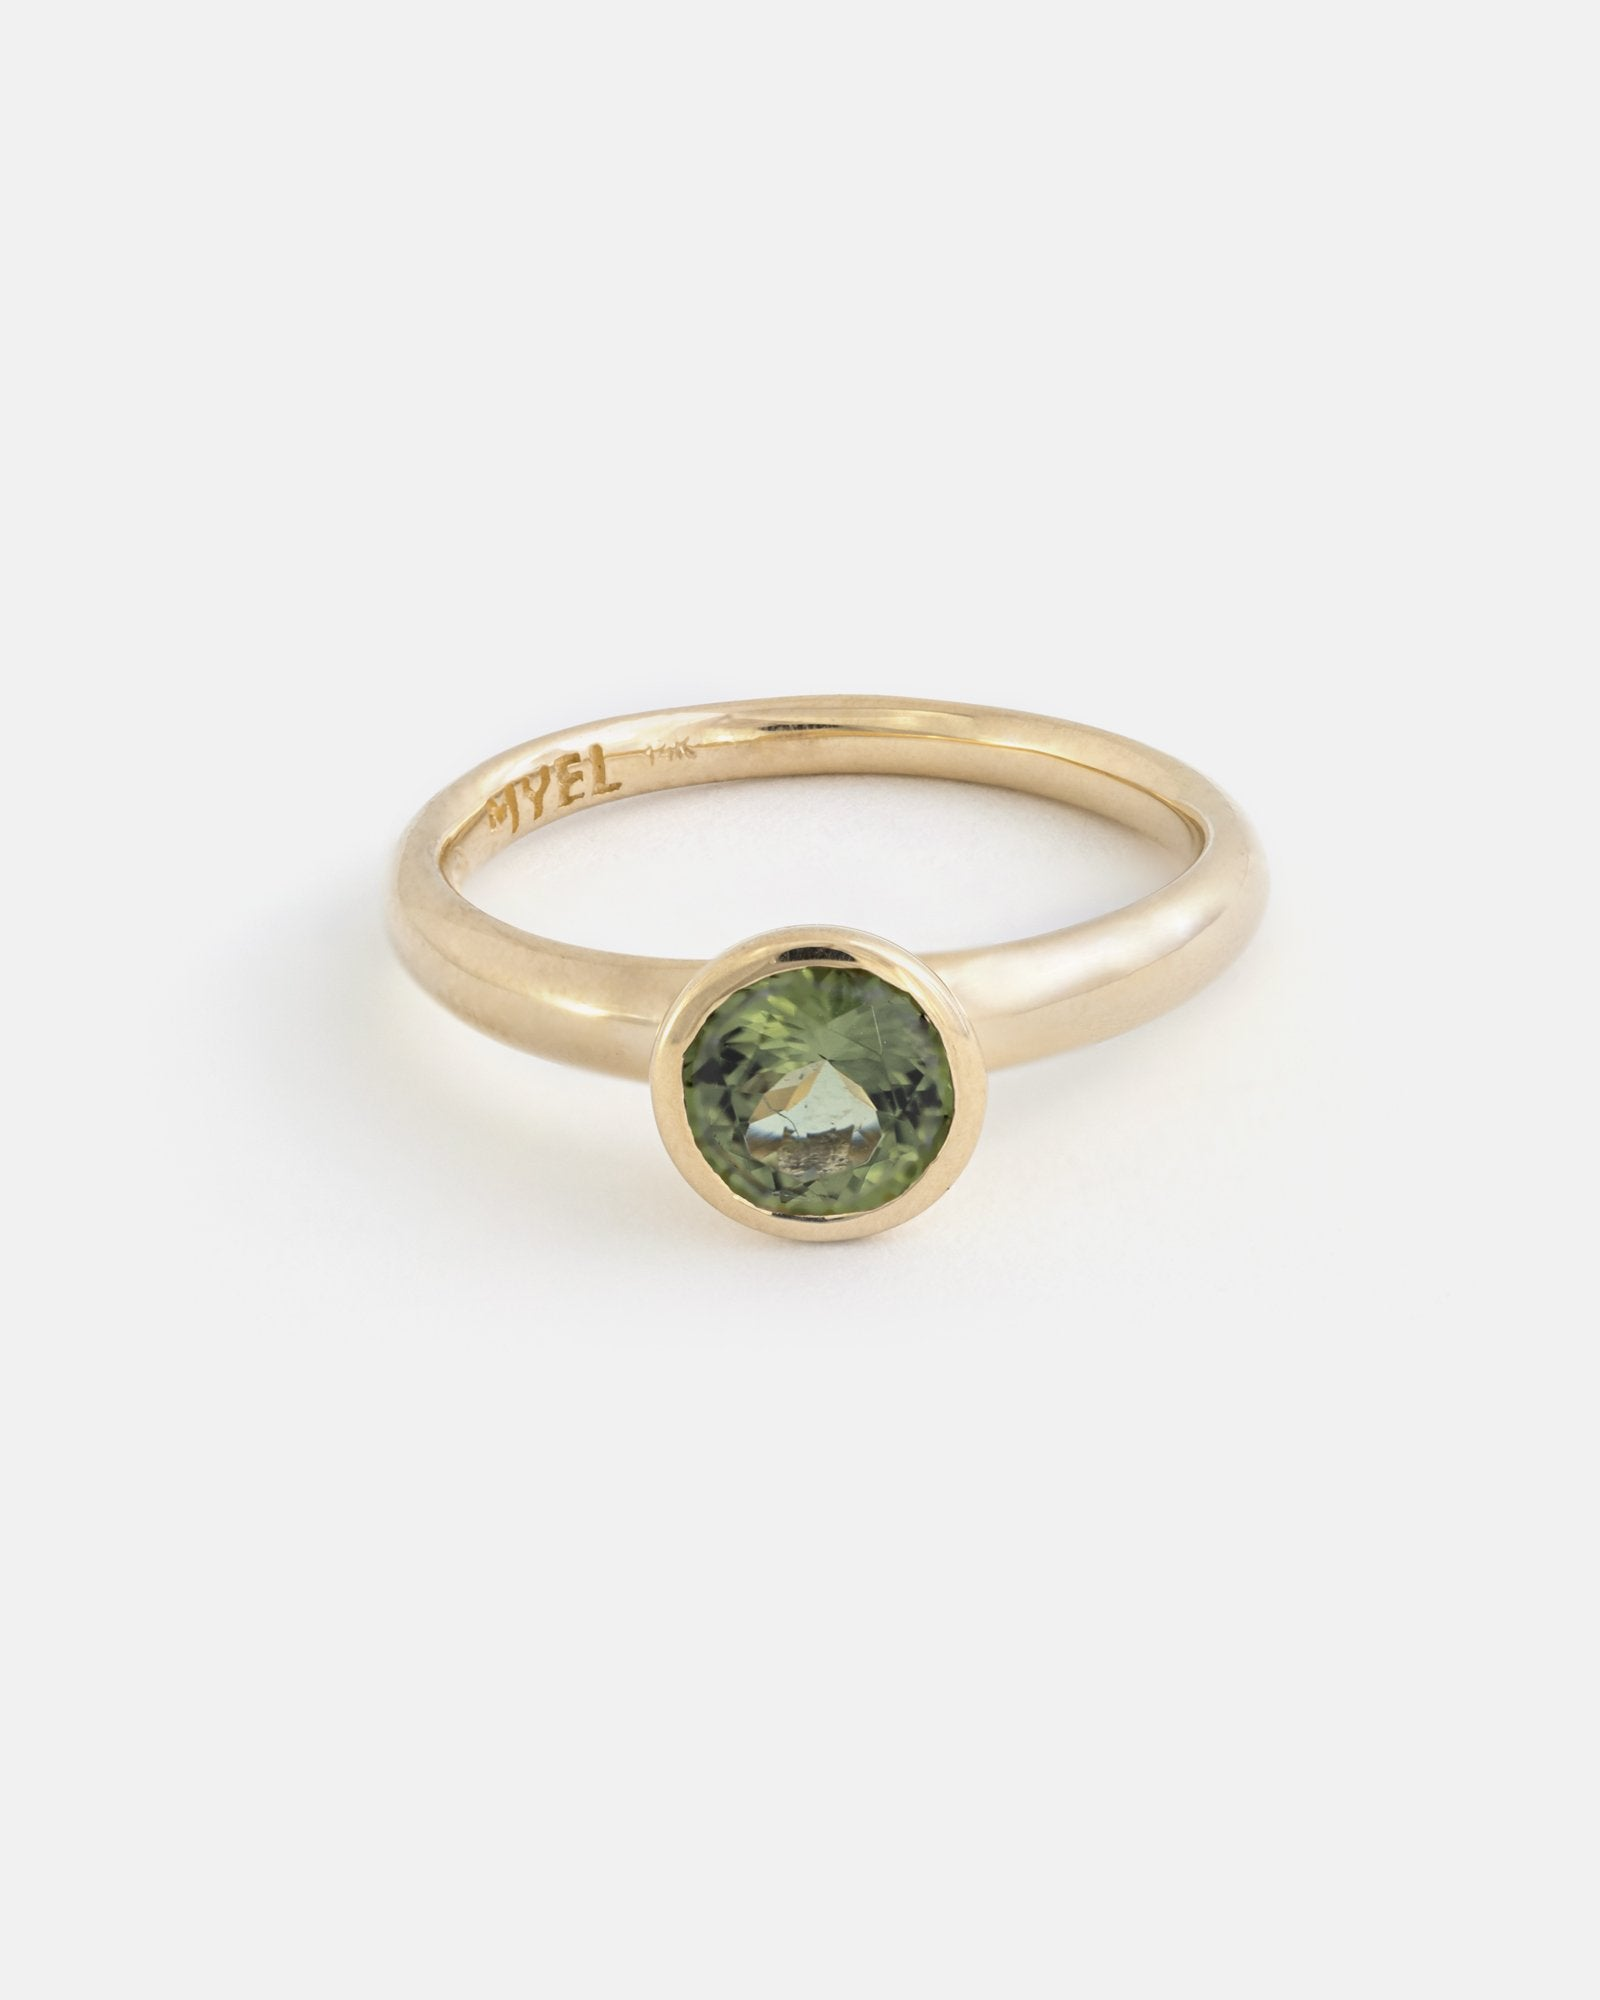 Round Vara Ring in Fairmined Gold with Tashmarine